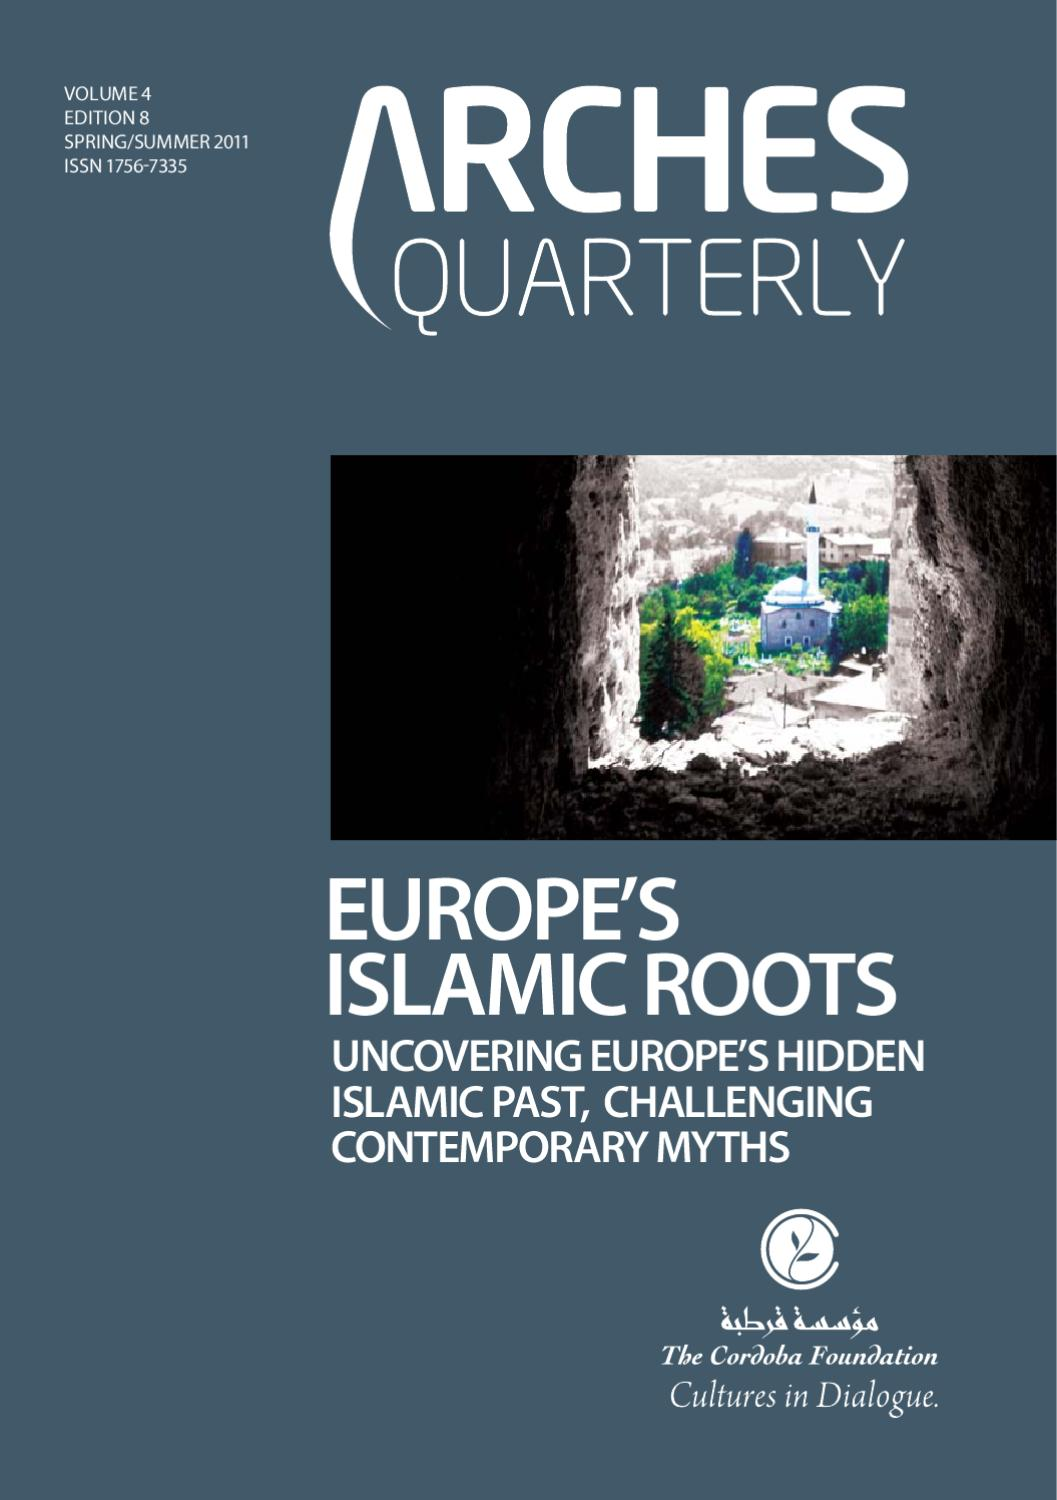 Arches Vol 4 Edition 8: Europe's Islamic Roots by The Cordoba Foundation -  issuu